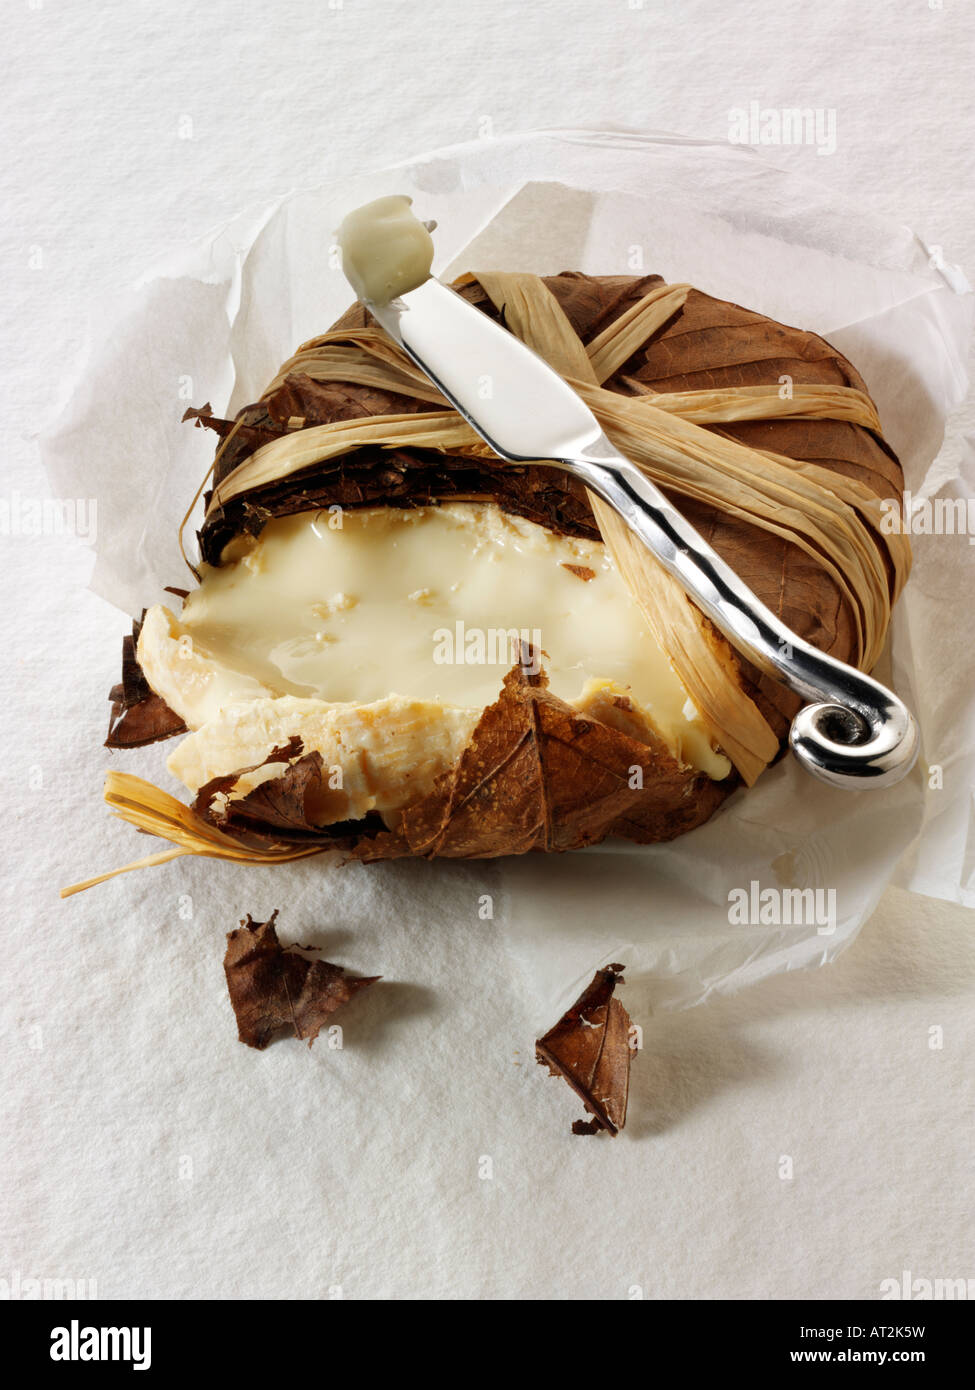 French Bannon soft goats cheese from  Provence in leaves against a white background - Stock Image